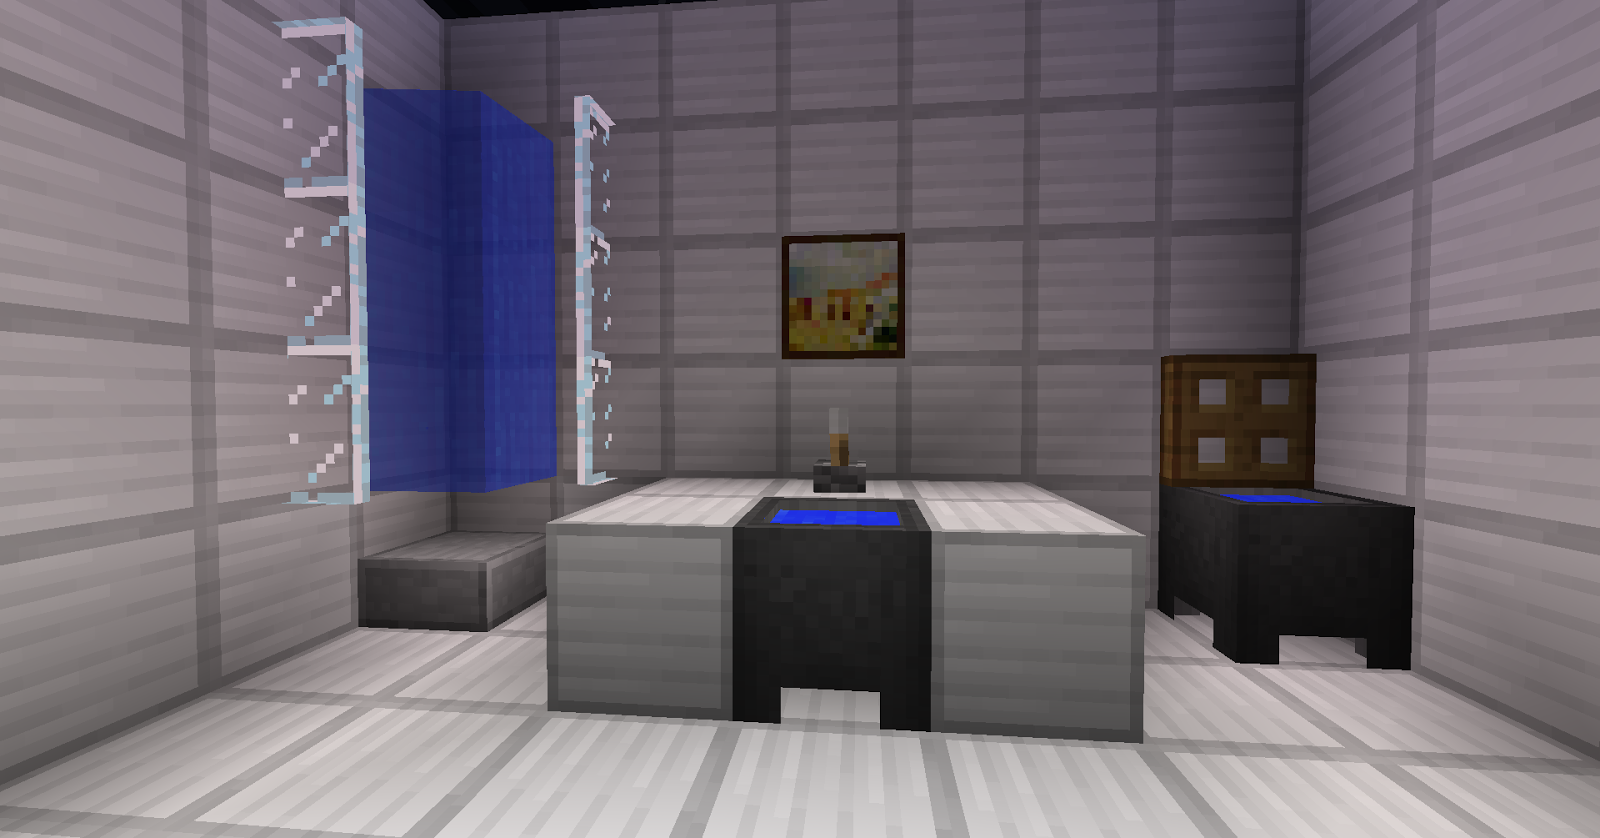 Minecraft bathroom ideas bathroom ideas for Bathroom designs minecraft